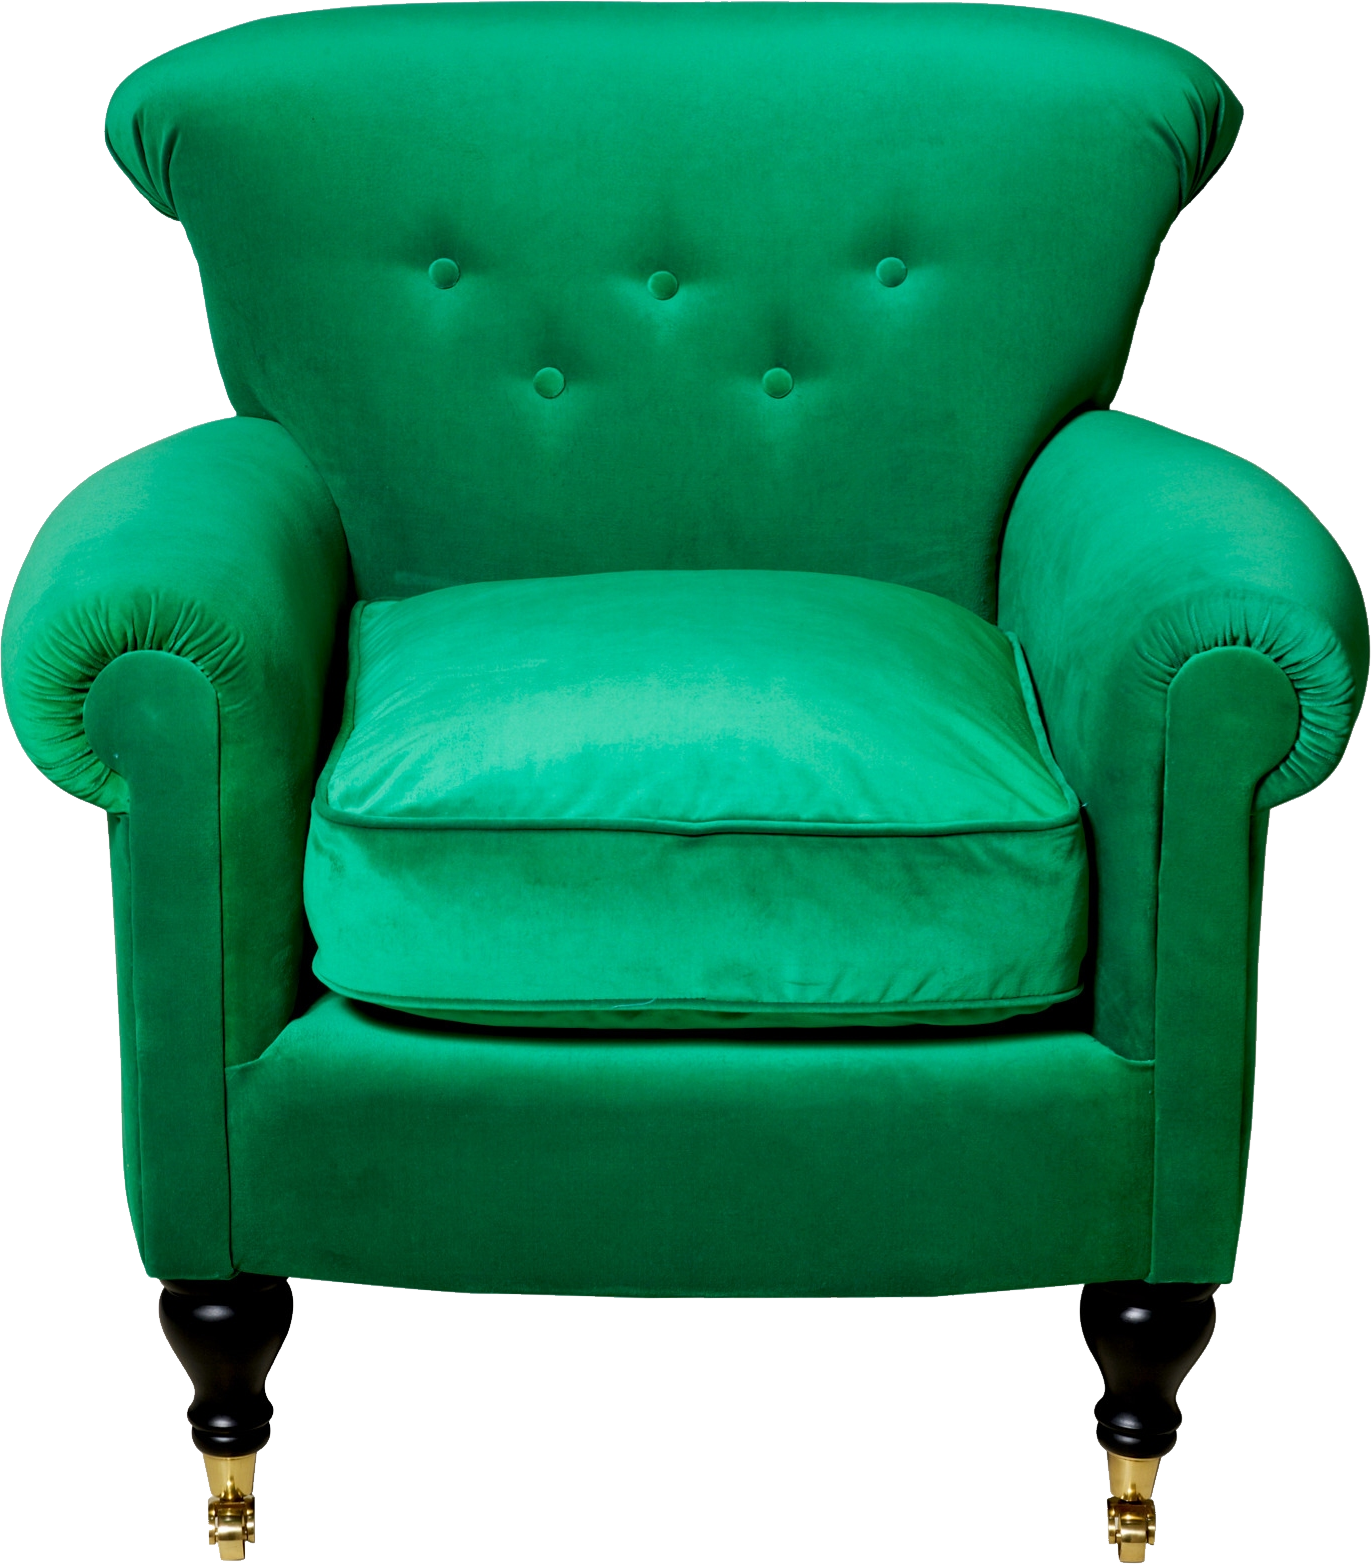 Armchair PNG Image Armchair, Woven dining chairs, Small